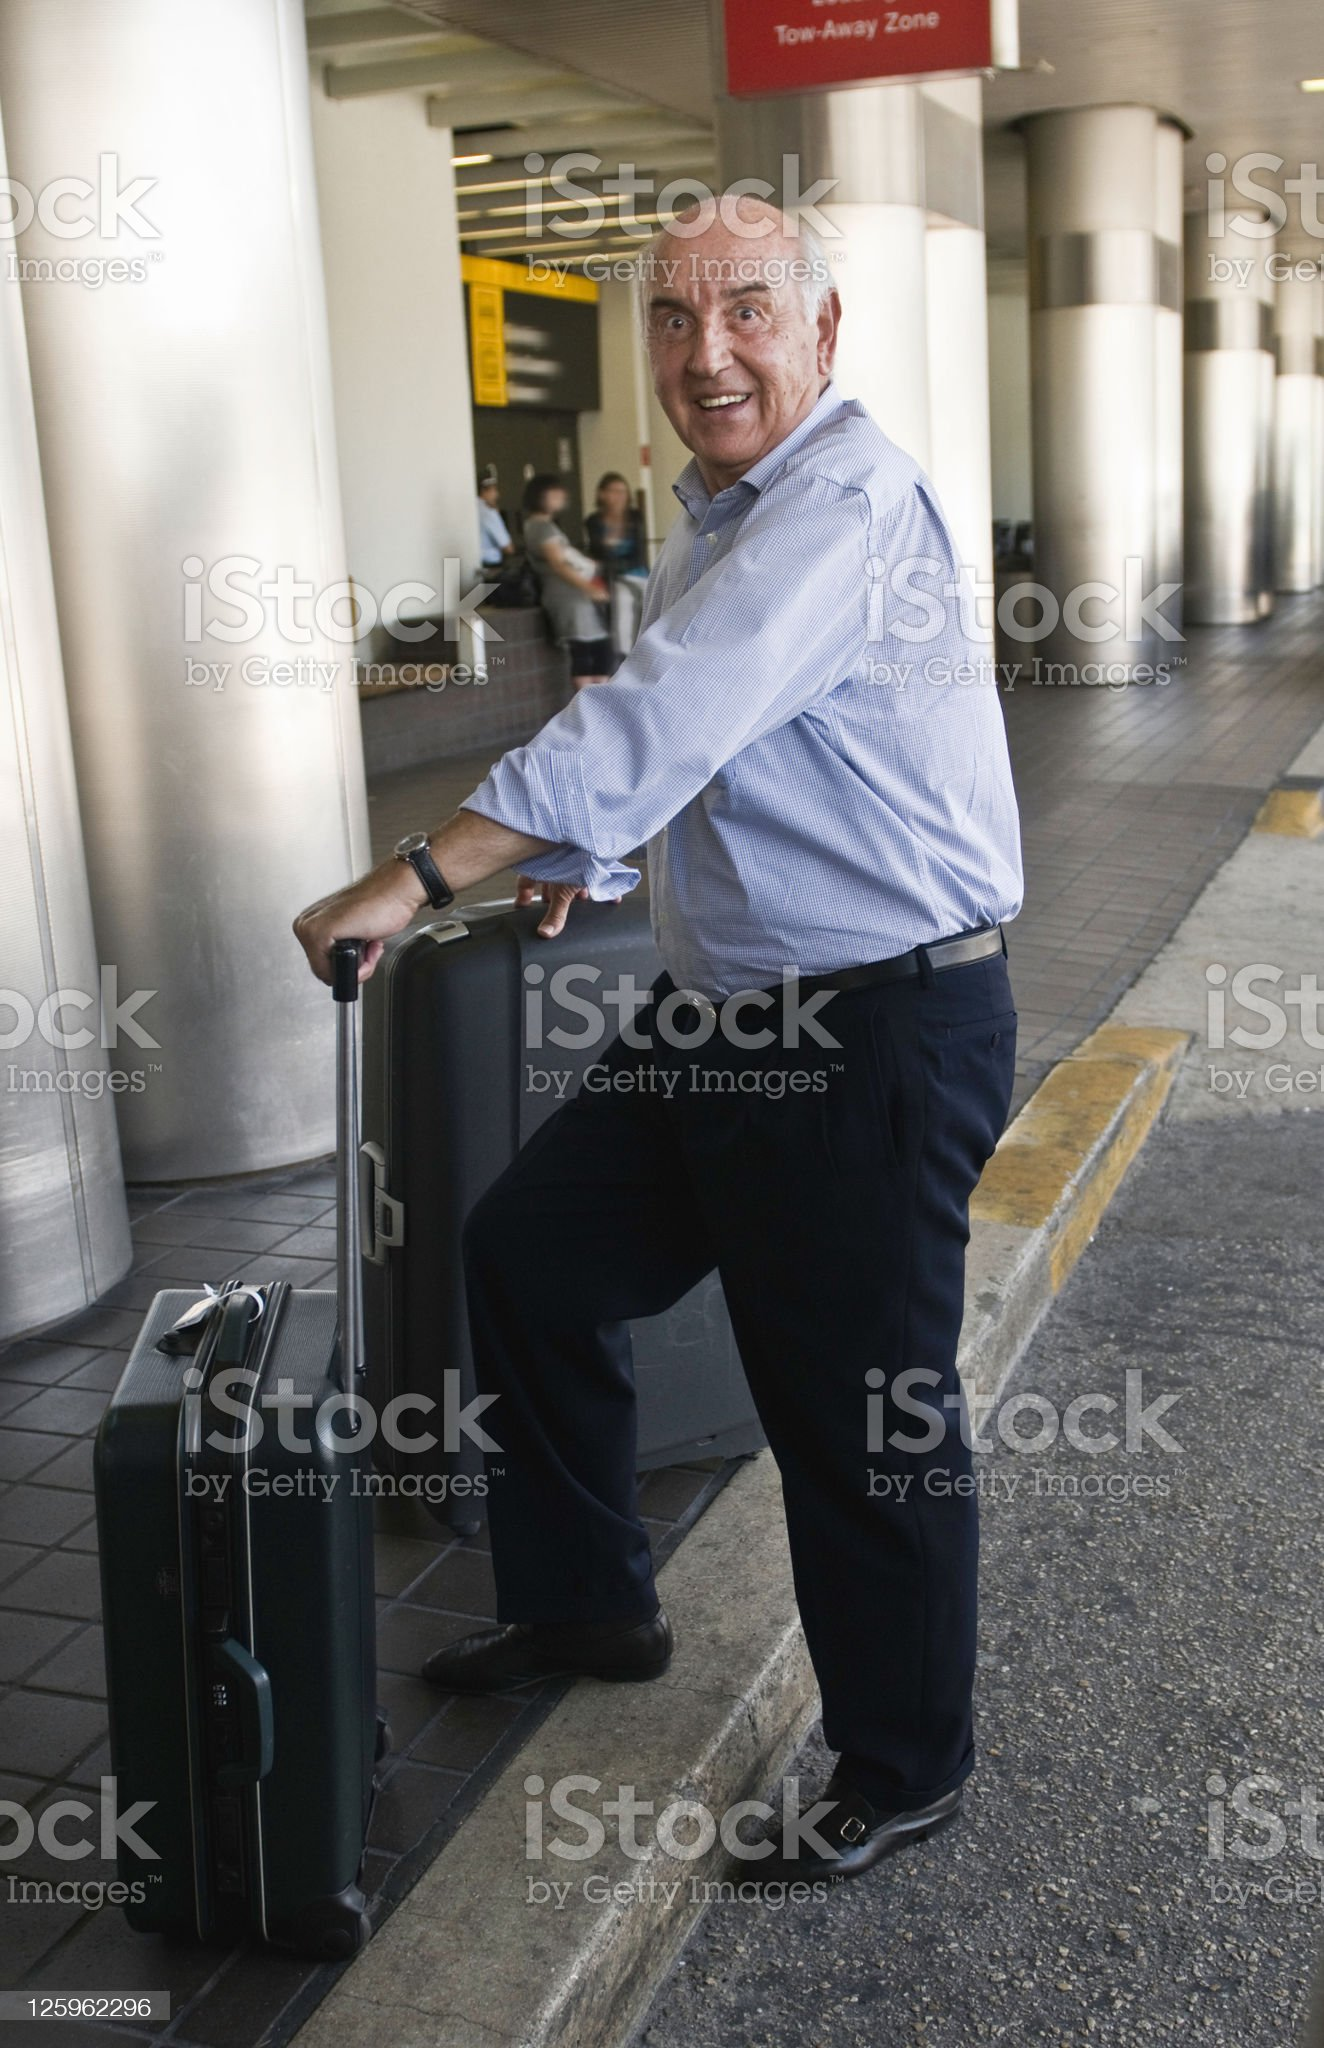 A man travelling through an airport with a luggage trolley. royalty-free stock photo